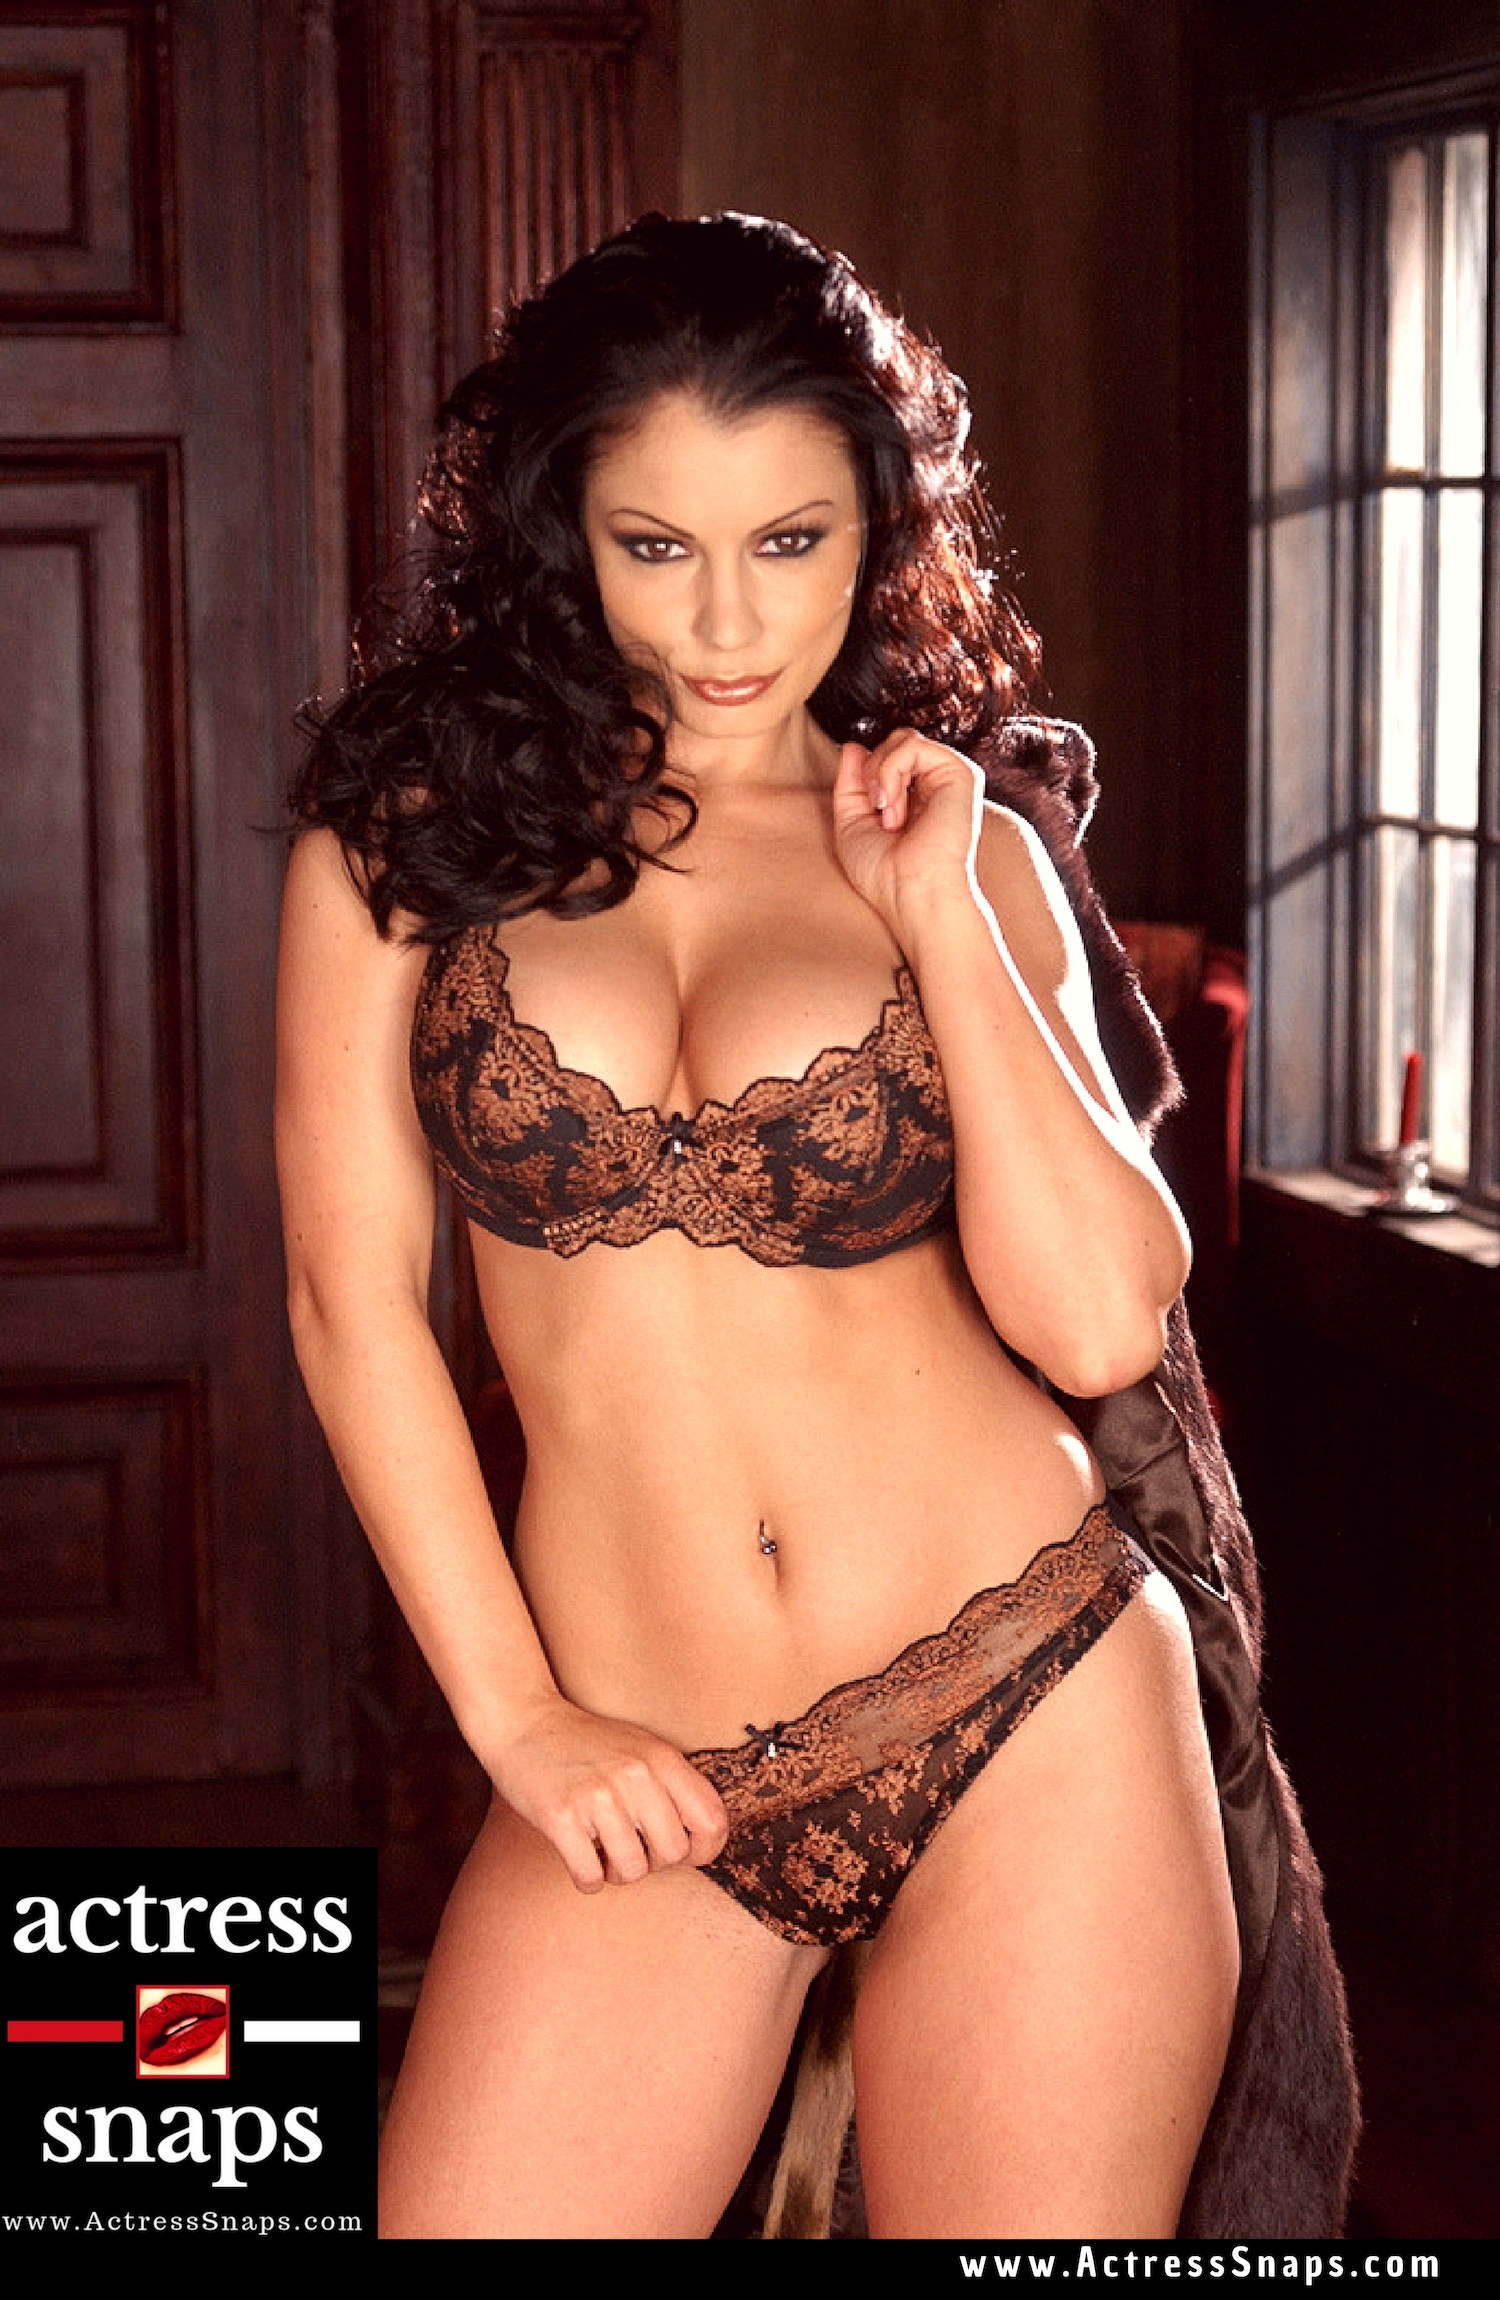 Sexy Aria Giovanni Photos - Sexy Actress Pictures | Hot Actress Pictures - ActressSnaps.com